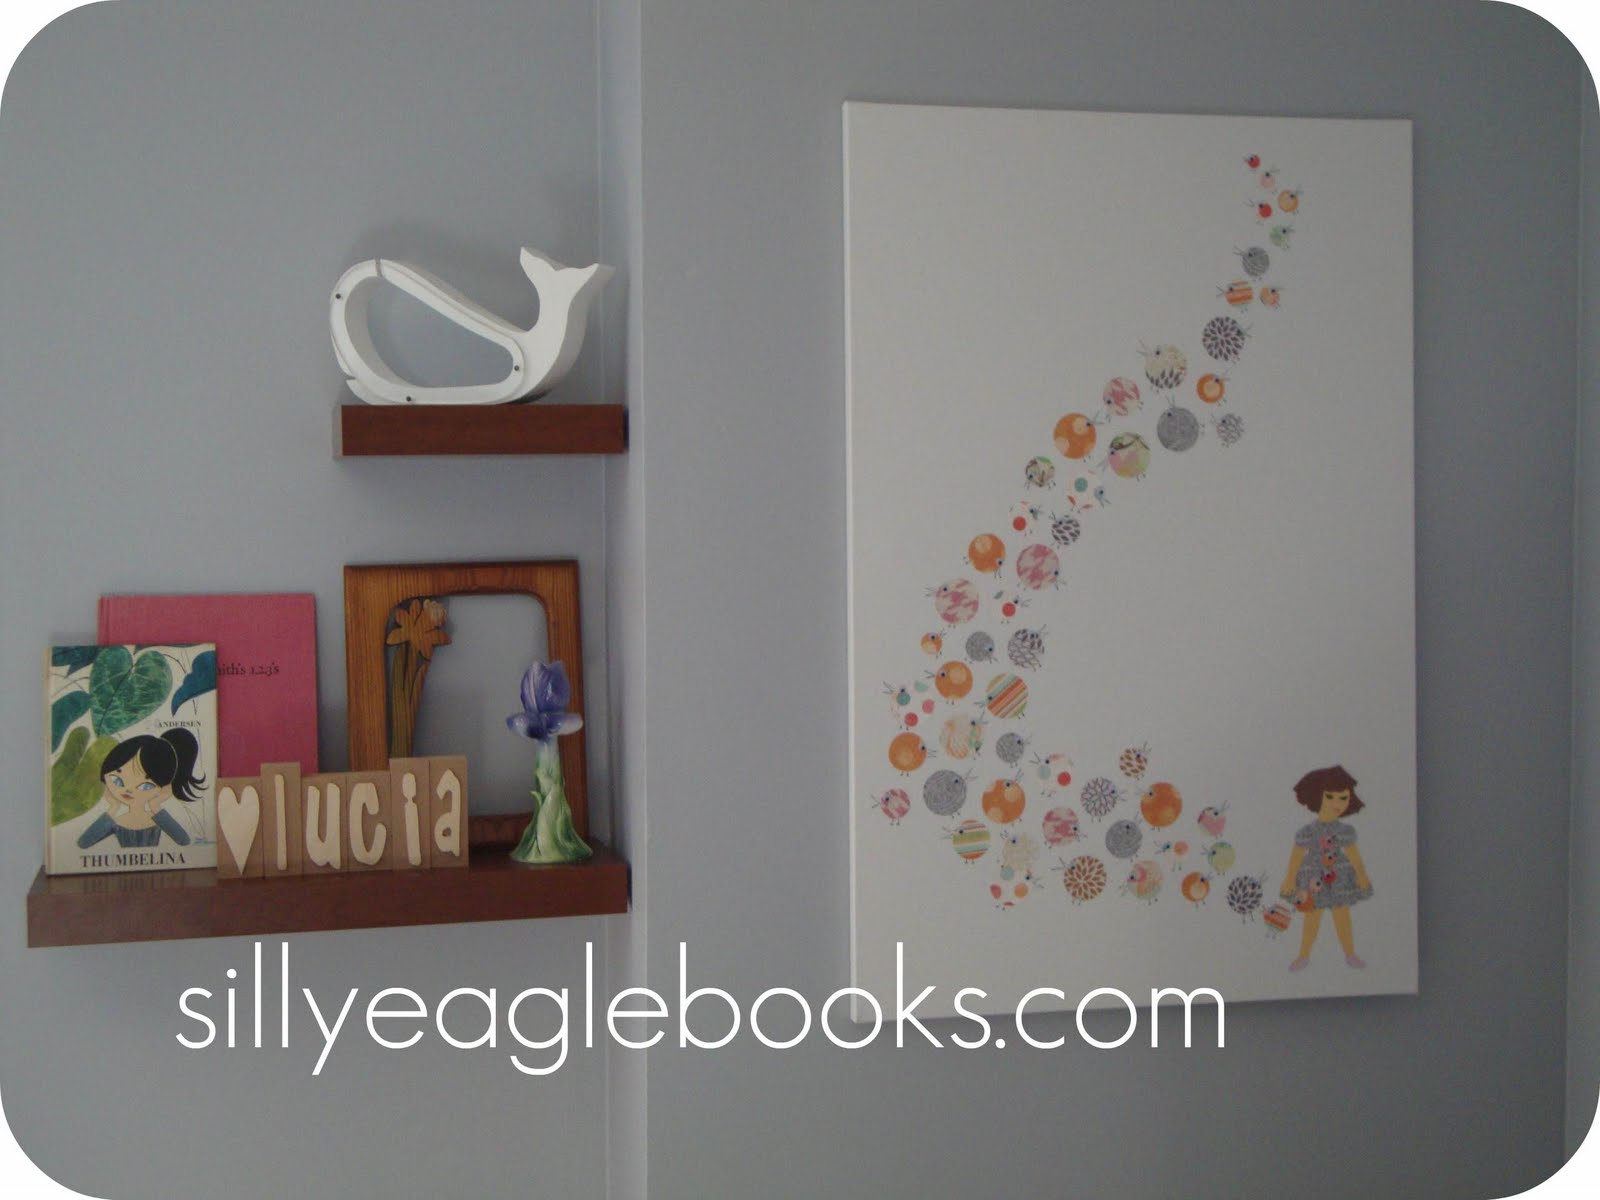 Silly Eagle Books: book-inspired nursery art: button beaks